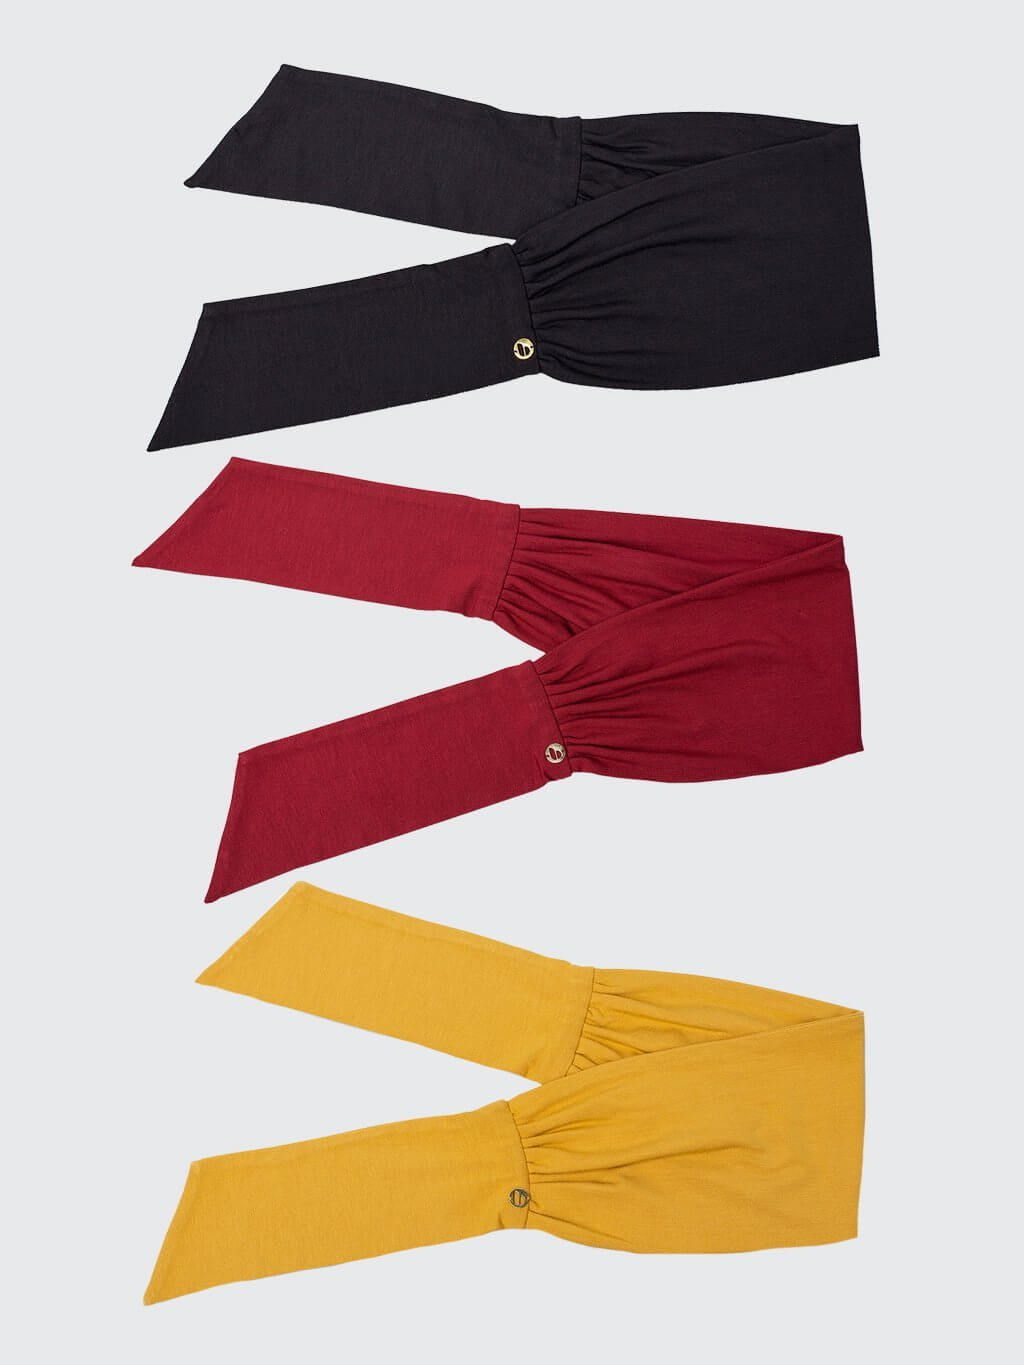 Beau Tie | 3 Pack | Black + Scarlet + Lucky Yellow